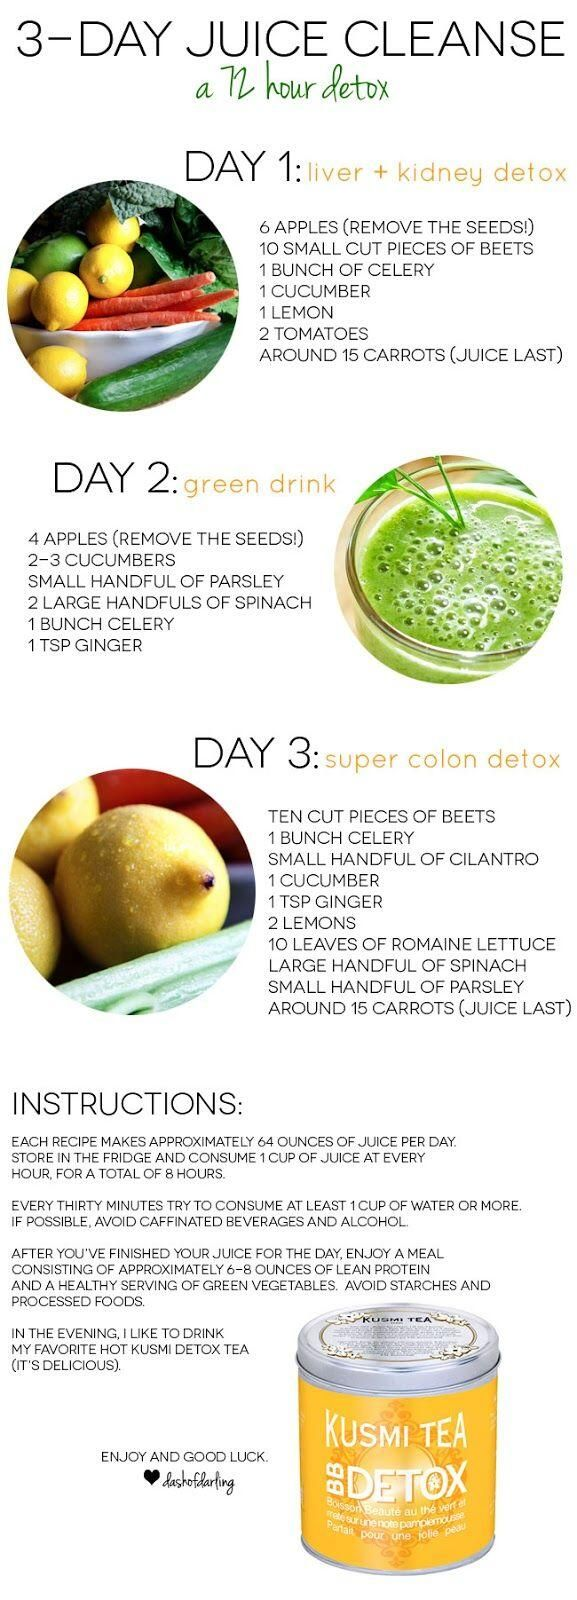 Twitter / AcneSkinSite: 3-Day Juice Cleanse... ...